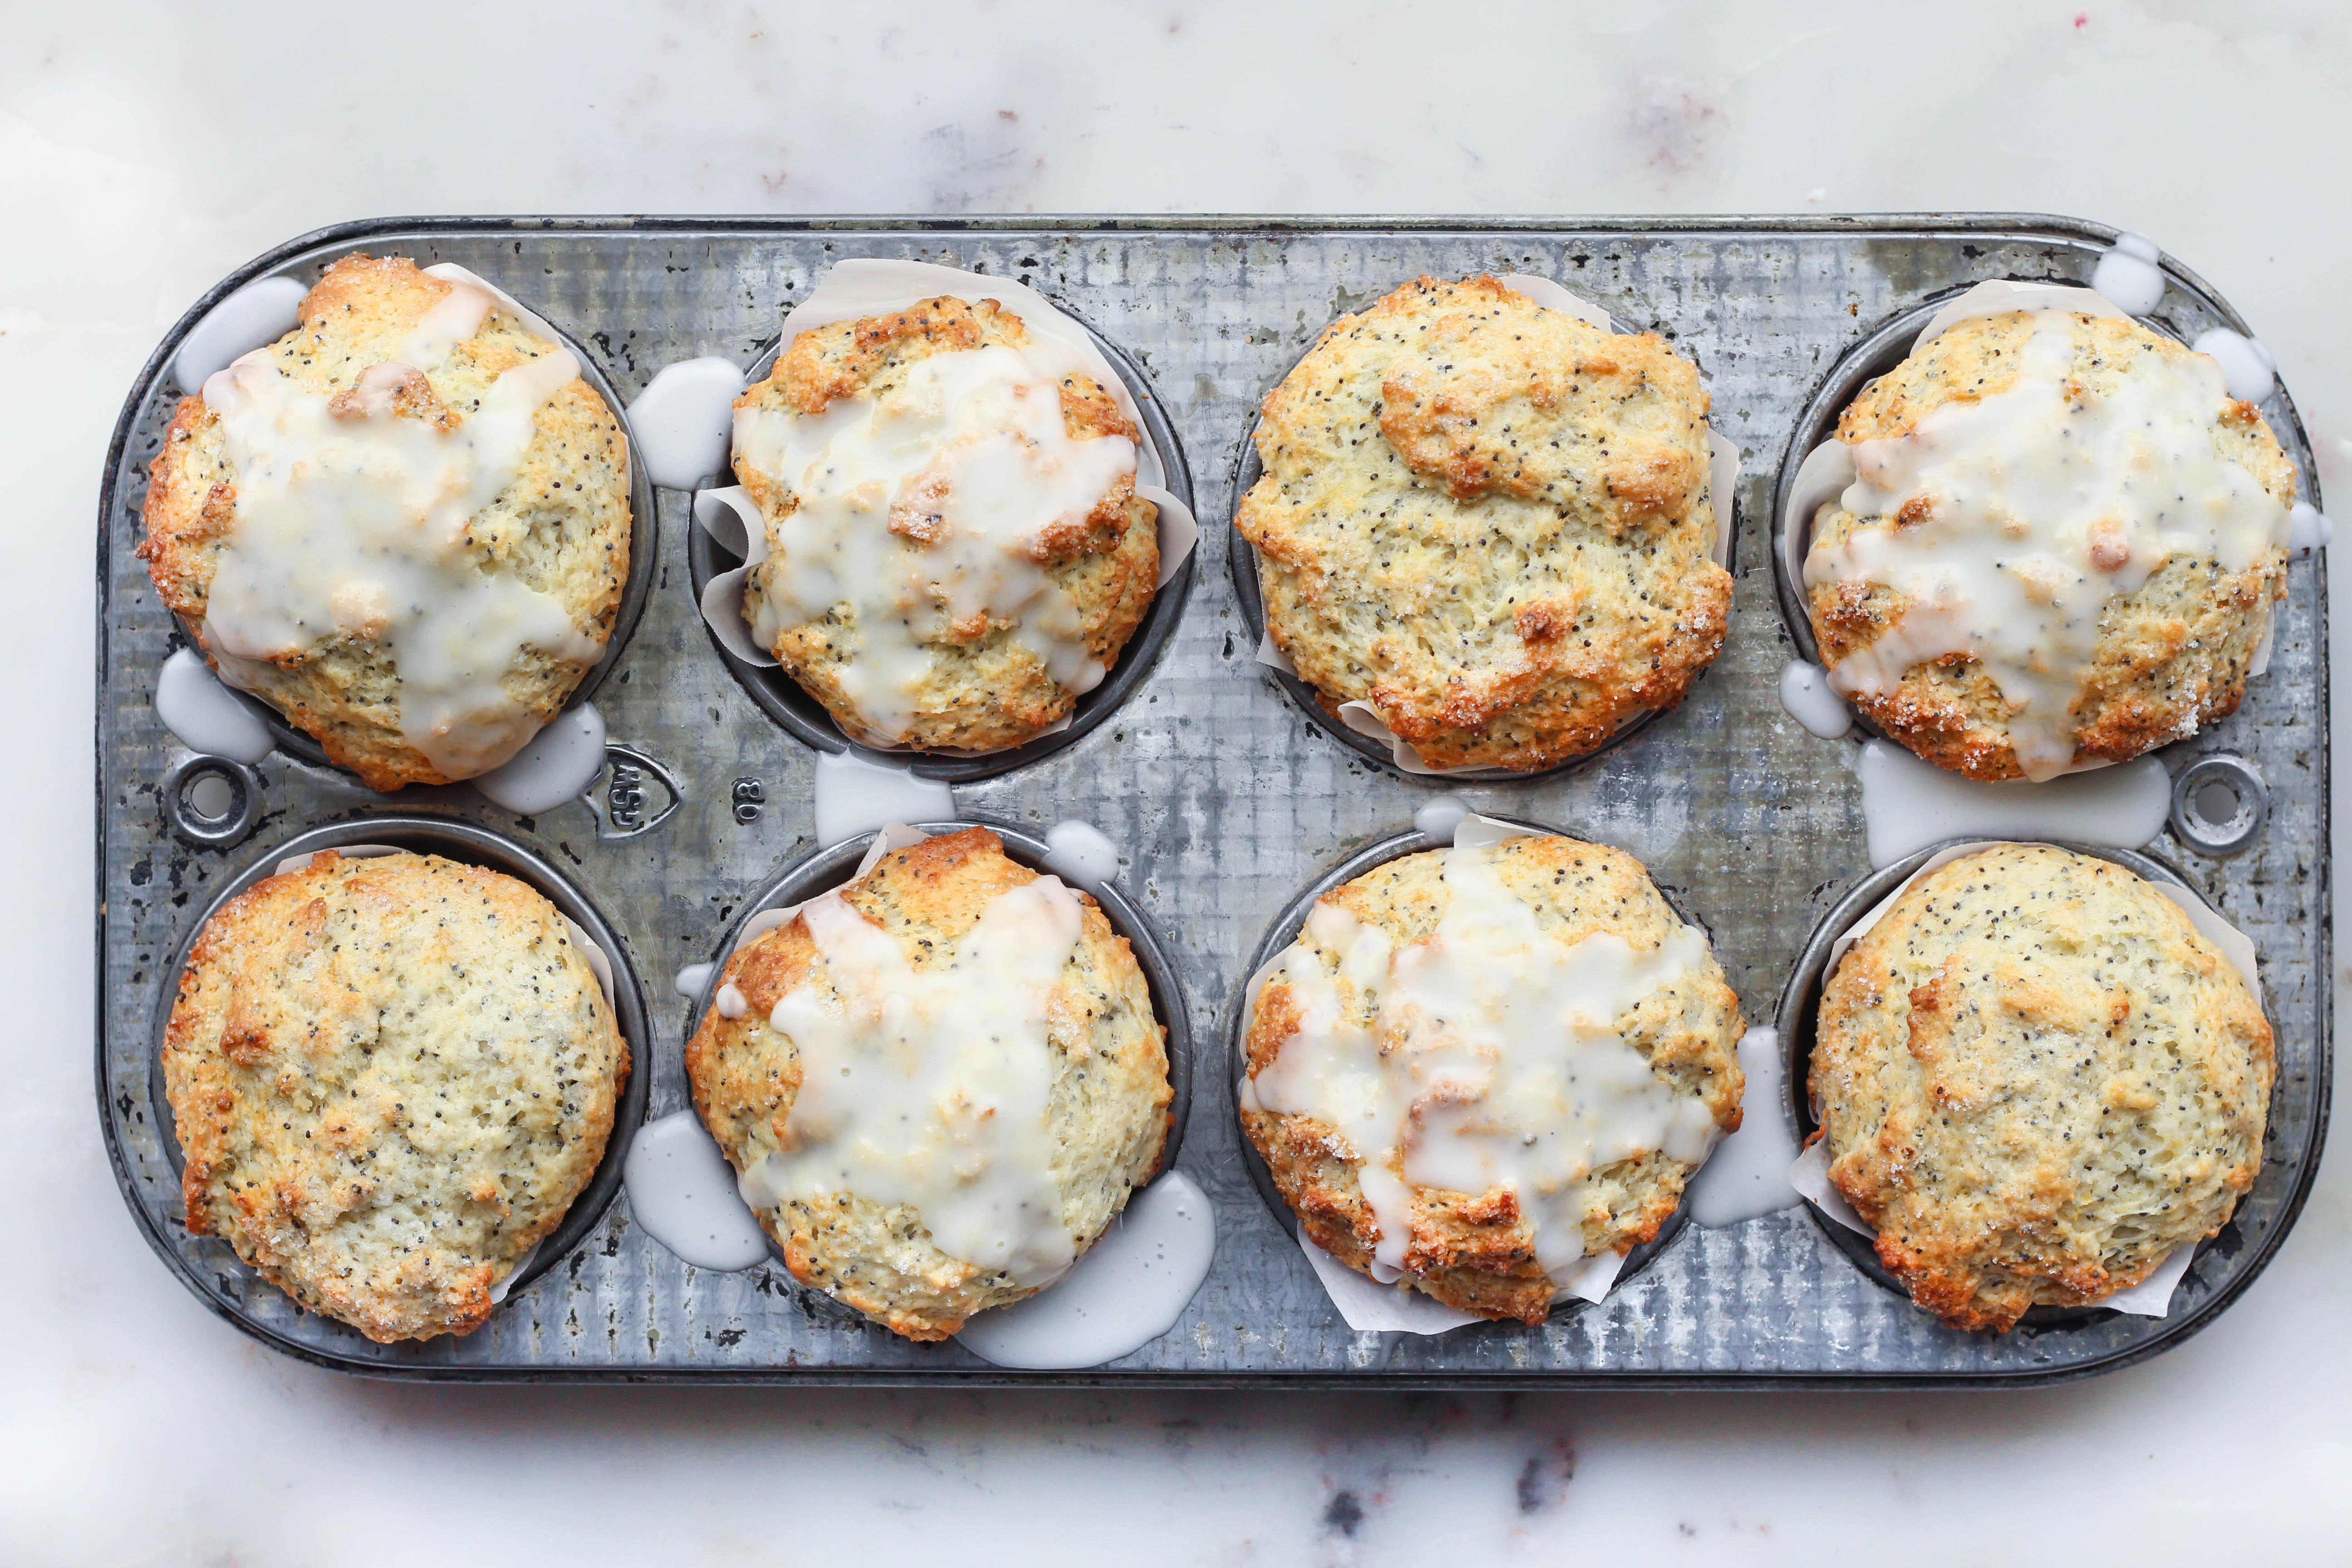 Buttermilk Lemon Poppy Seed Muffins - The Sweet and Simple Kitchen